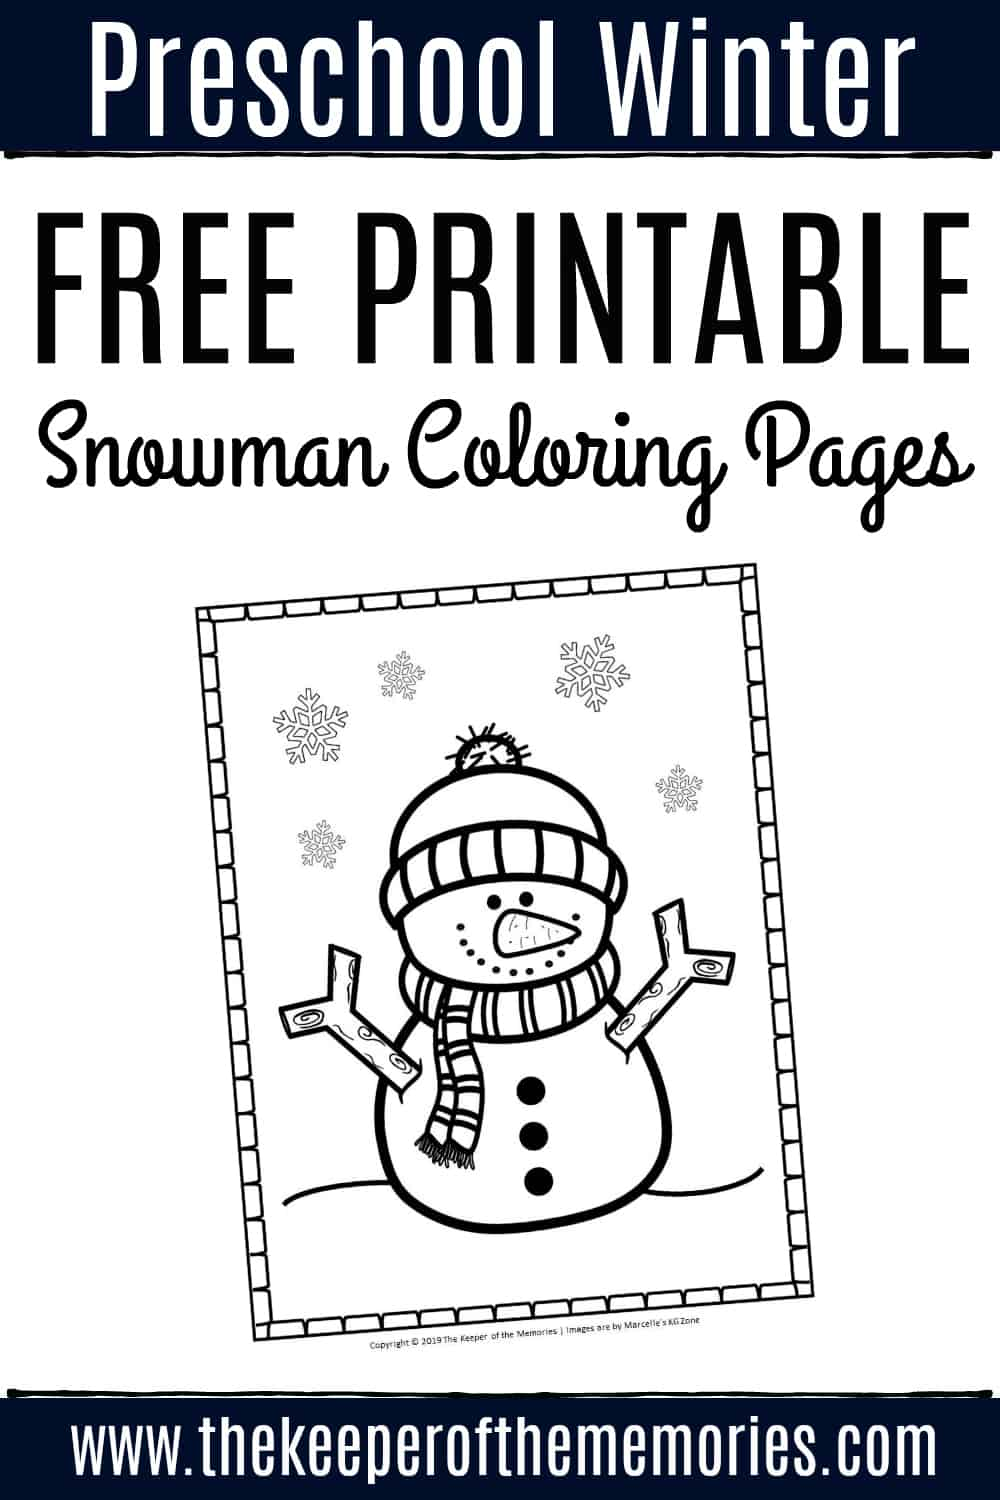 Snowman Coloring Pages - Free and Printable! - Clip Art Library | 1500x1000